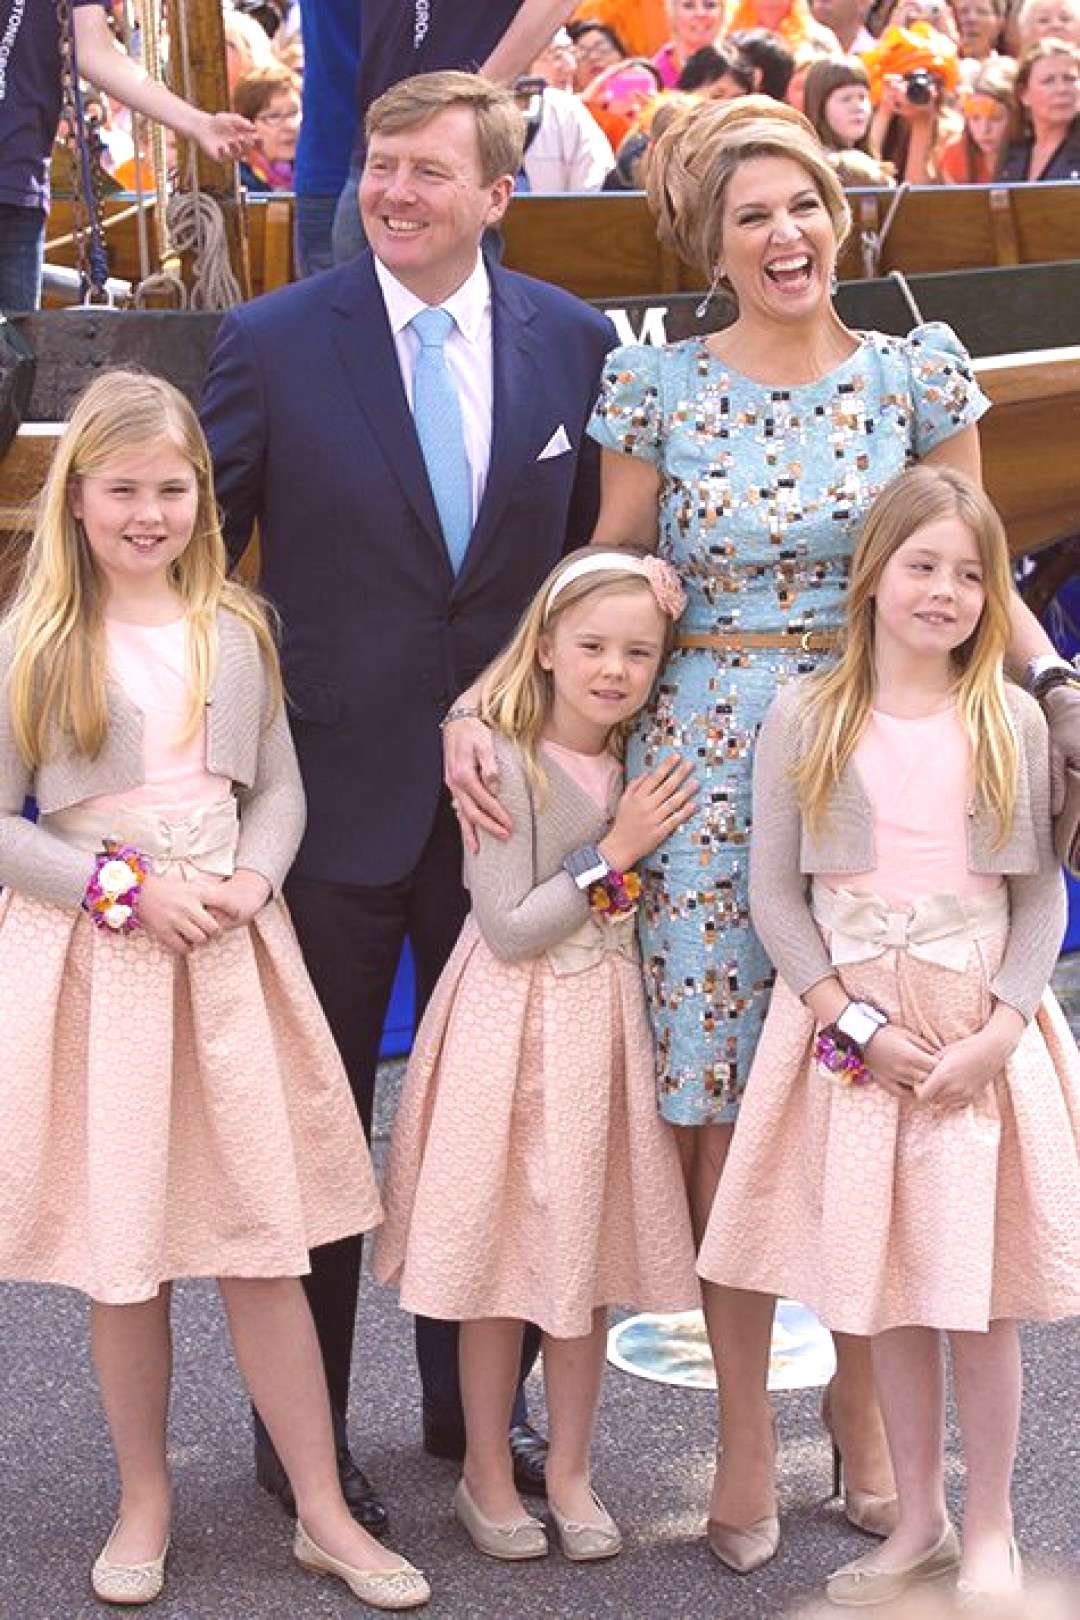 Queen Maxima and King Willem-Alexander of the Netherlands celebrate their first Kings Day - Queen